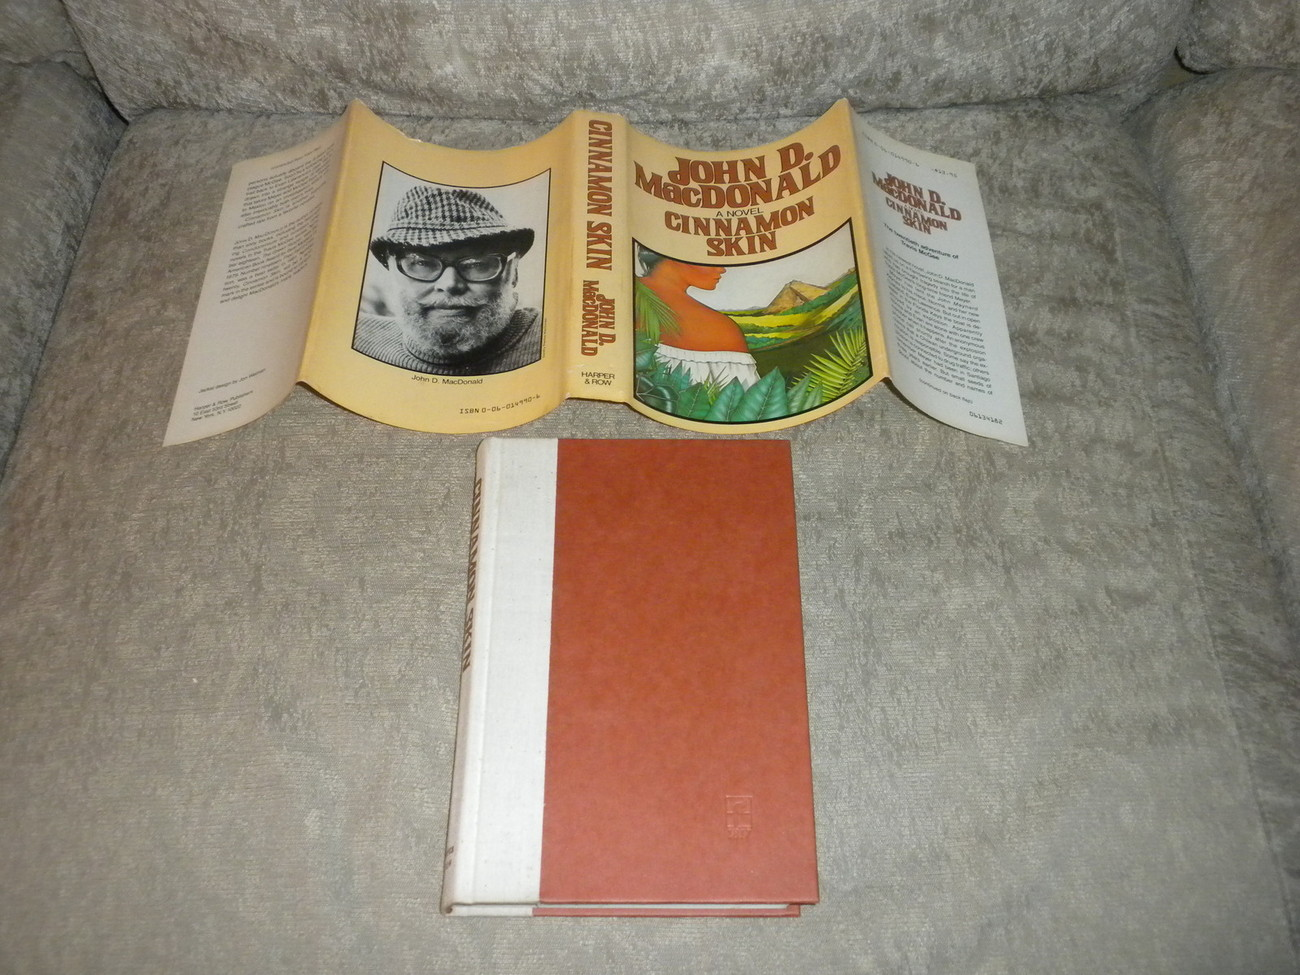 Primary image for Cinnamon Skin by John MacDonald 1982 Hardcover w Dust Jacket stated 1st Edition